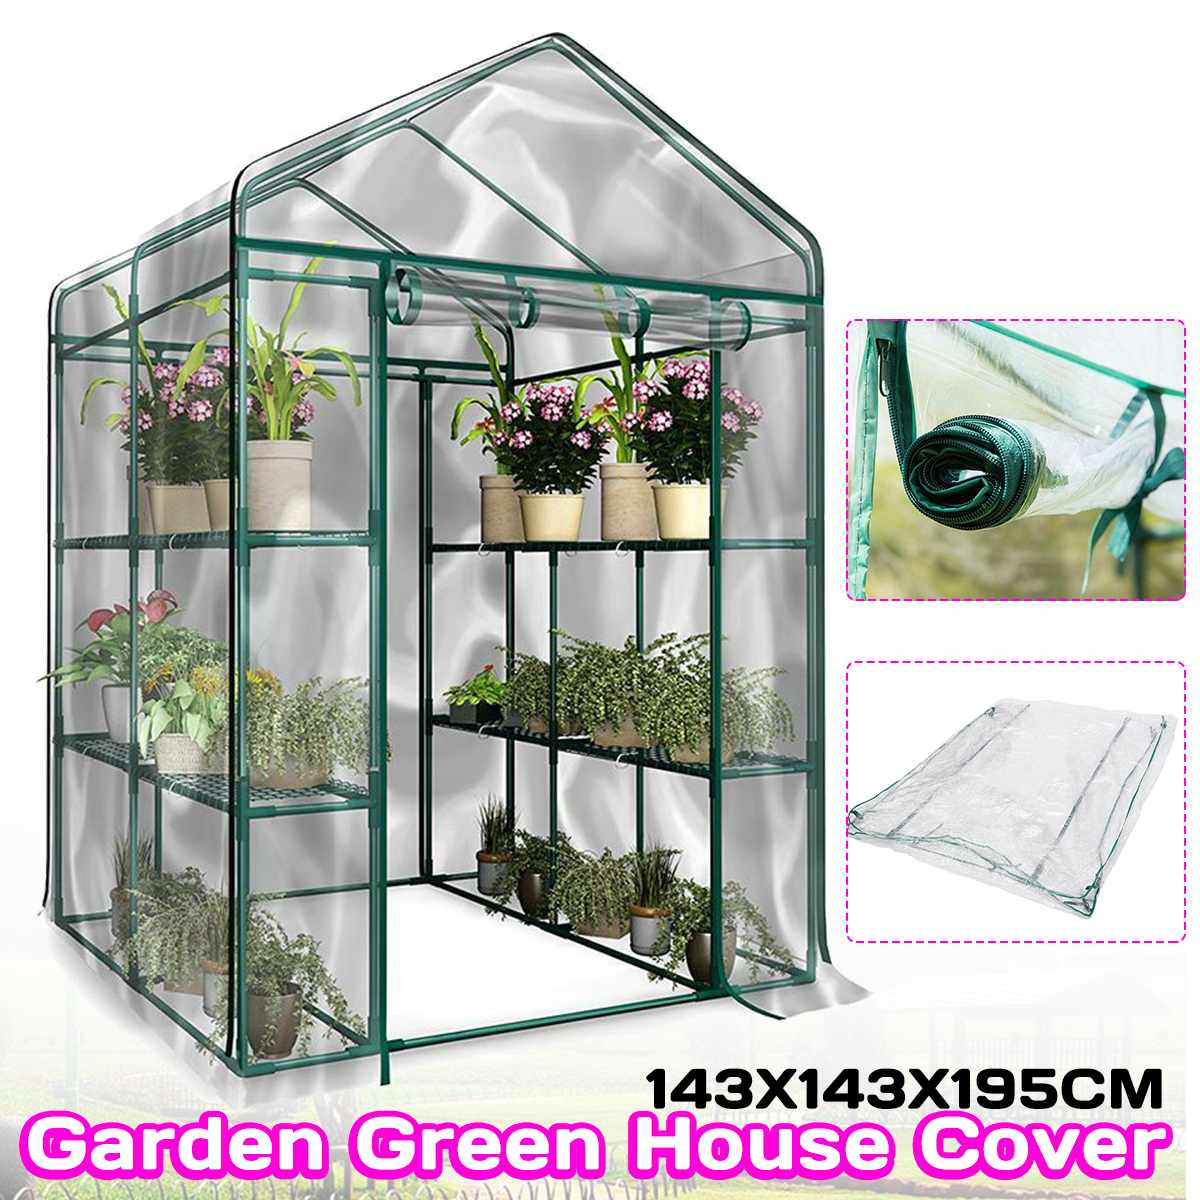 3-Tier Portable Greenhouse PVC Cover Garden Cover Plants Flower House 143X143X195cm Corrosion-resistant Waterproof